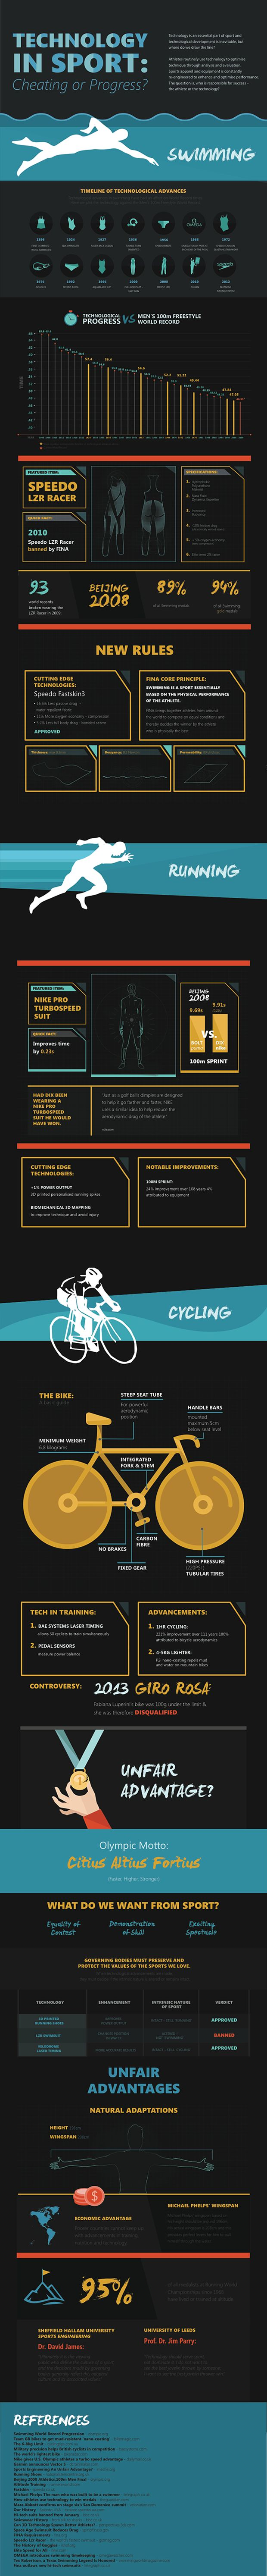 Infographic: Is Technology Ruining Endurance Sports?